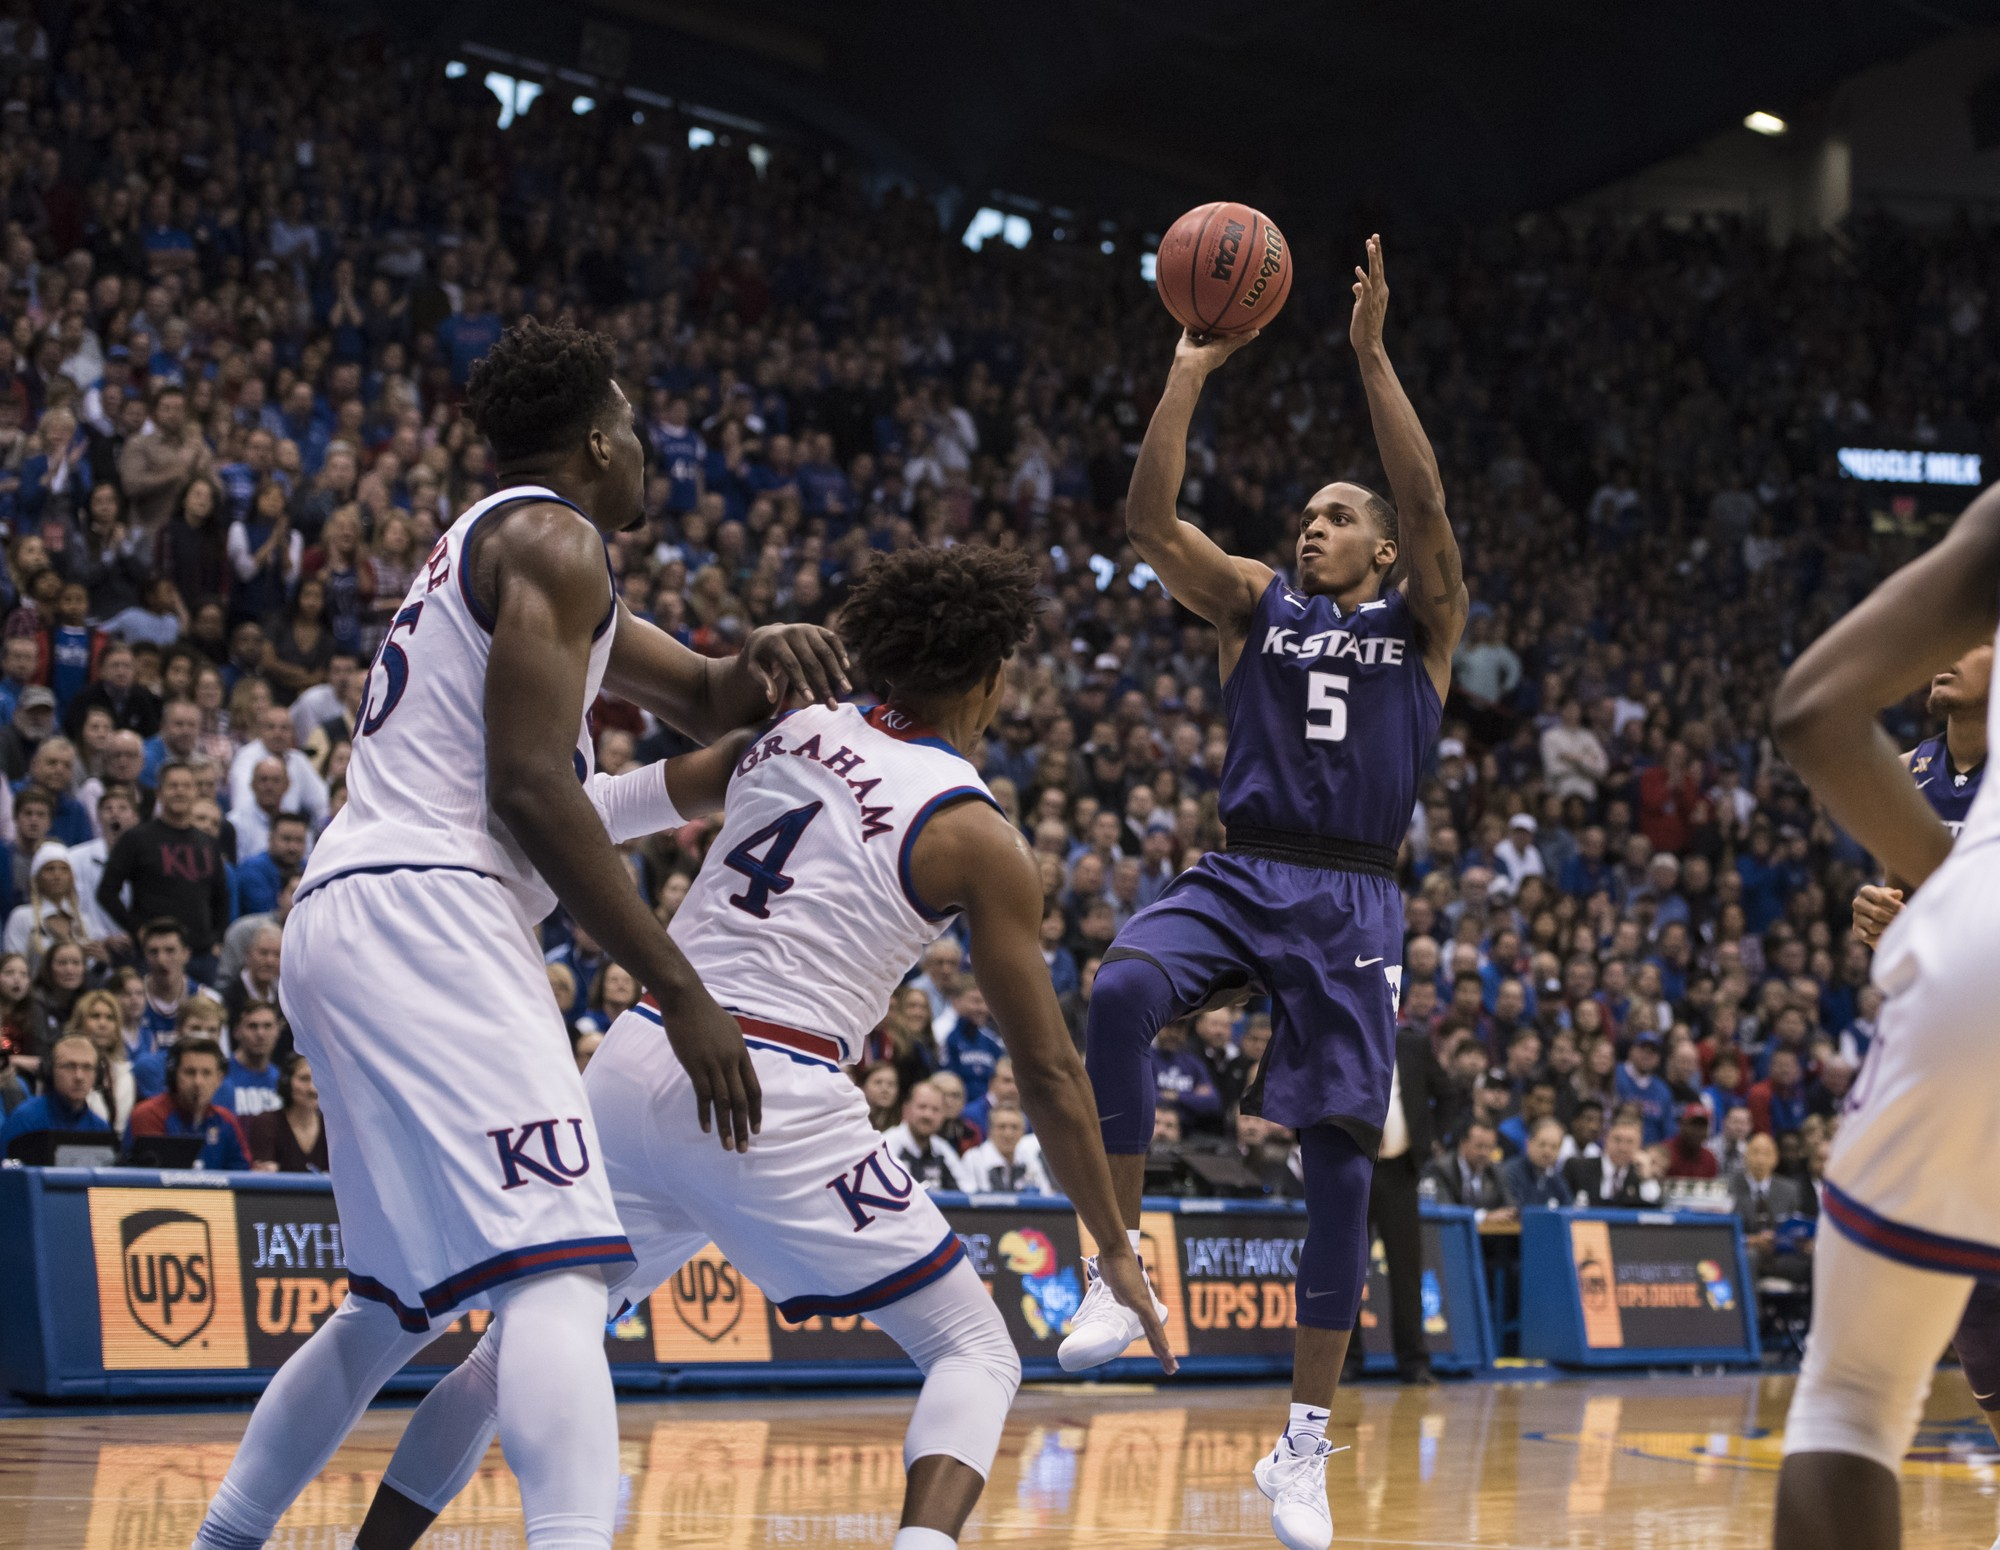 Kansas State vs Kansas basketball